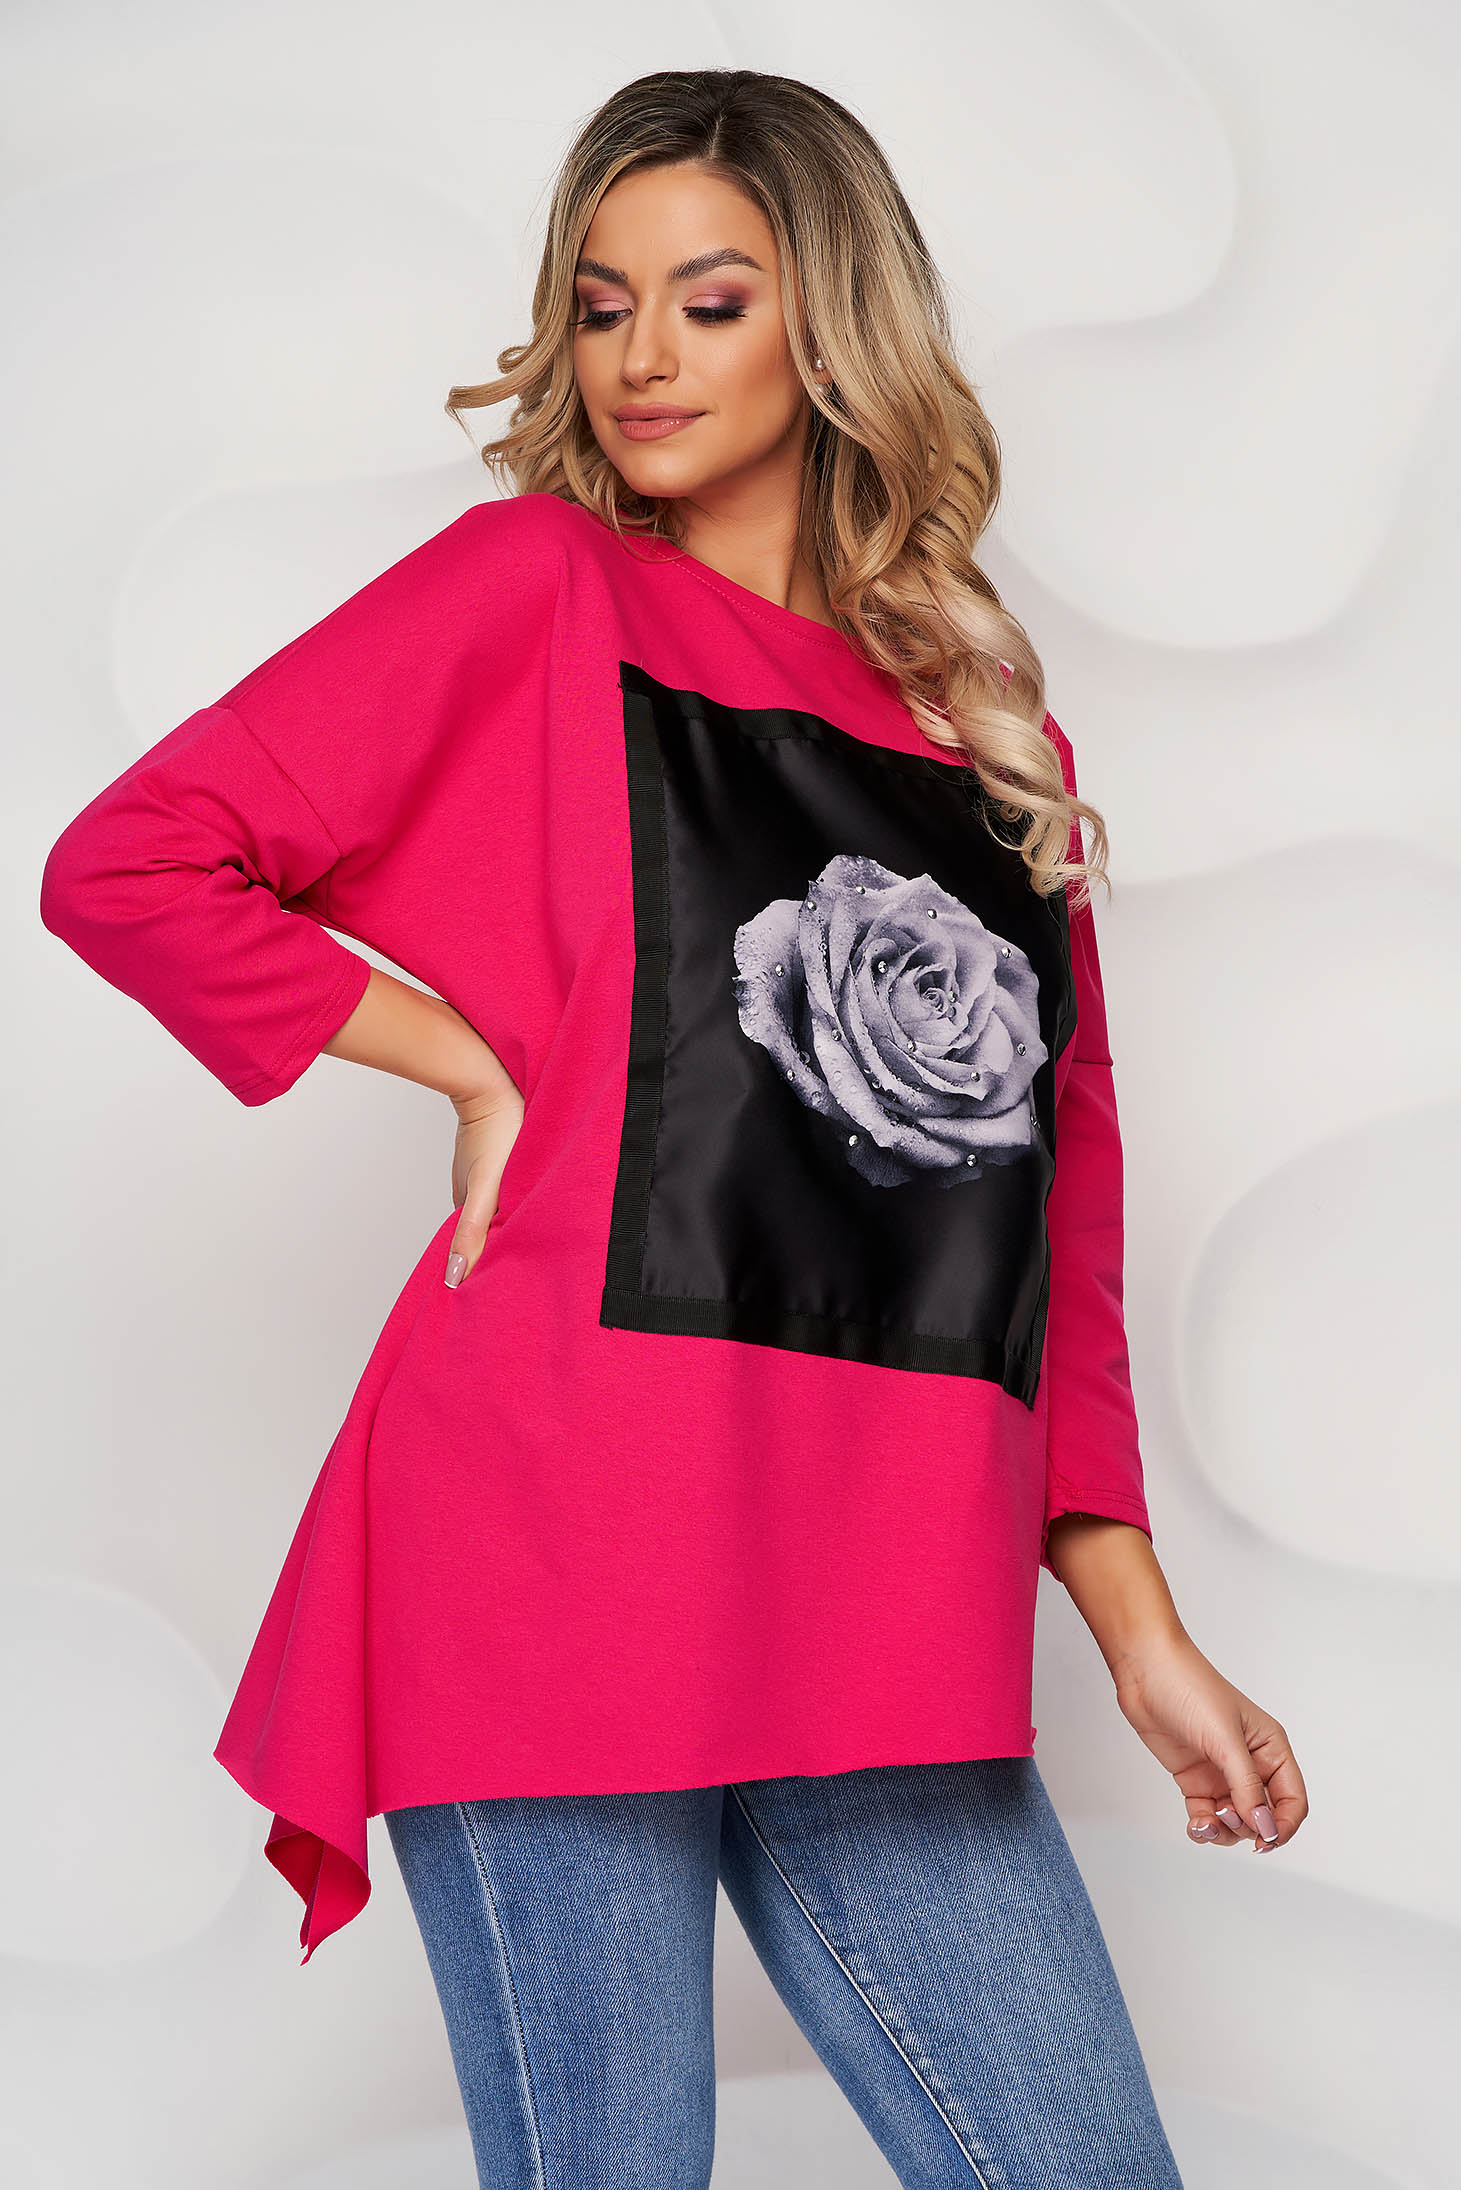 Pink women`s blouse cotton with crystal embellished details with graphic details